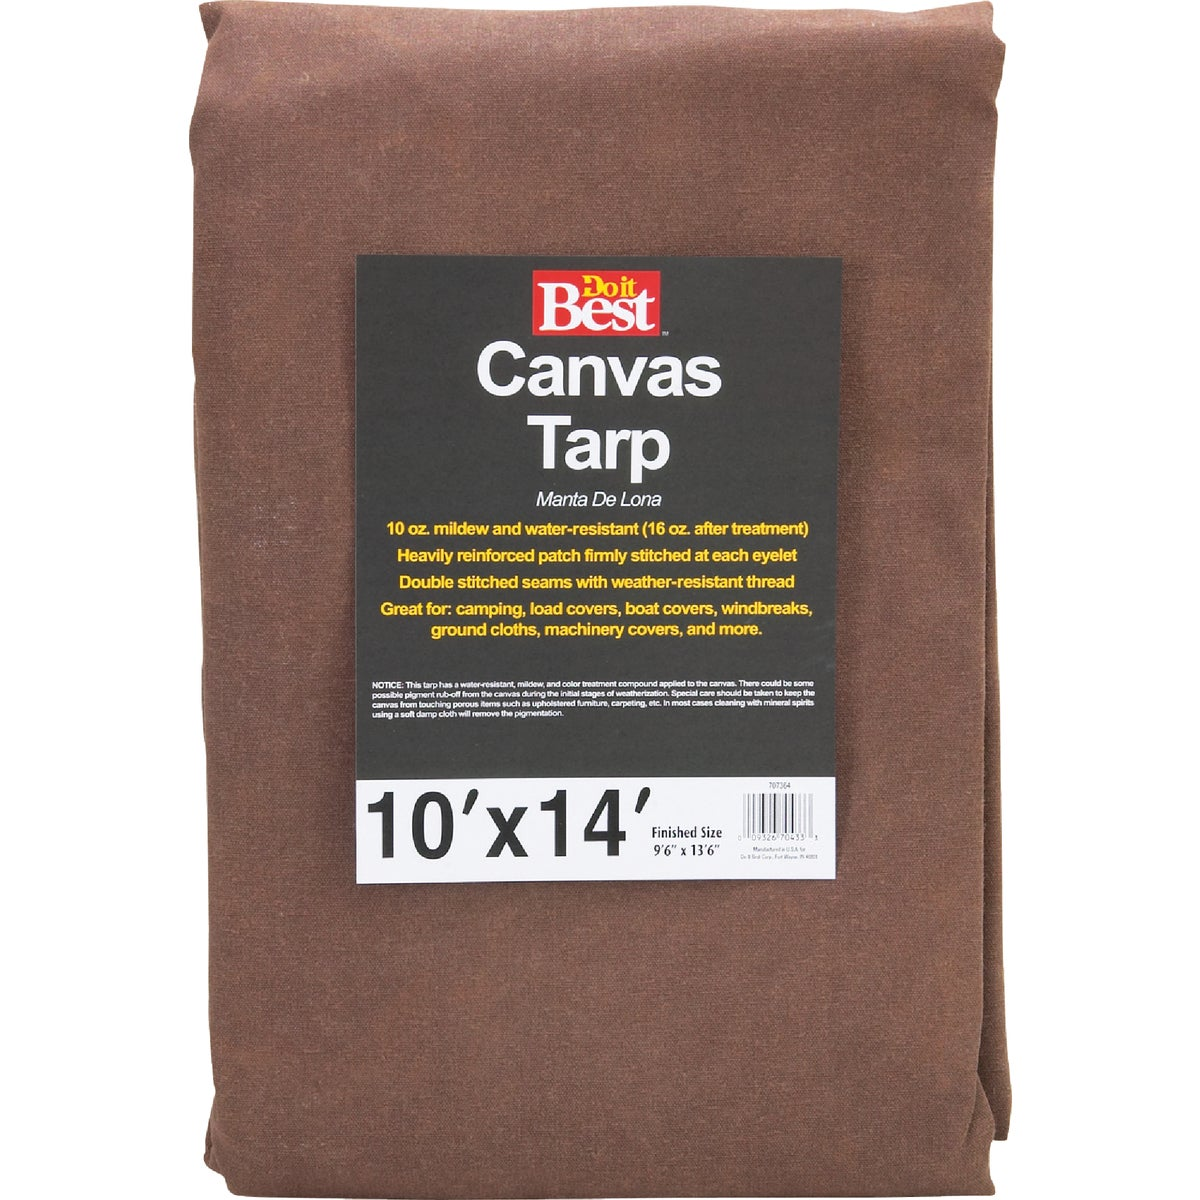 10X14-10OZ CANVAS TARP - TCR10010014T by Gosport Mfg Co